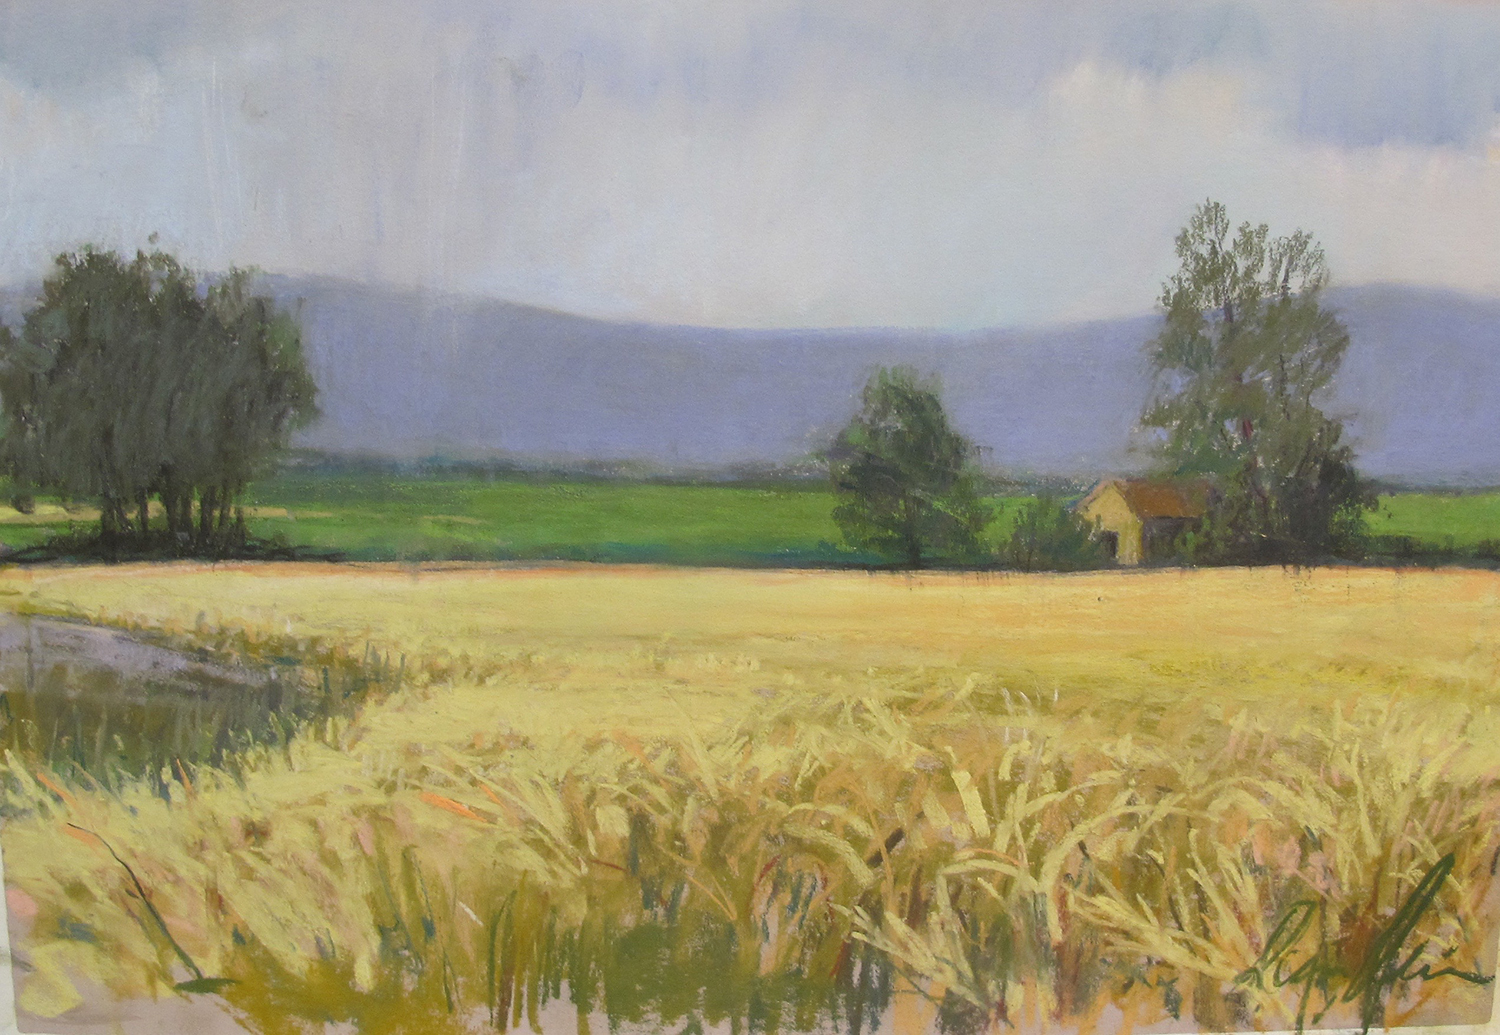 Rain on the Wheat, Moux, France